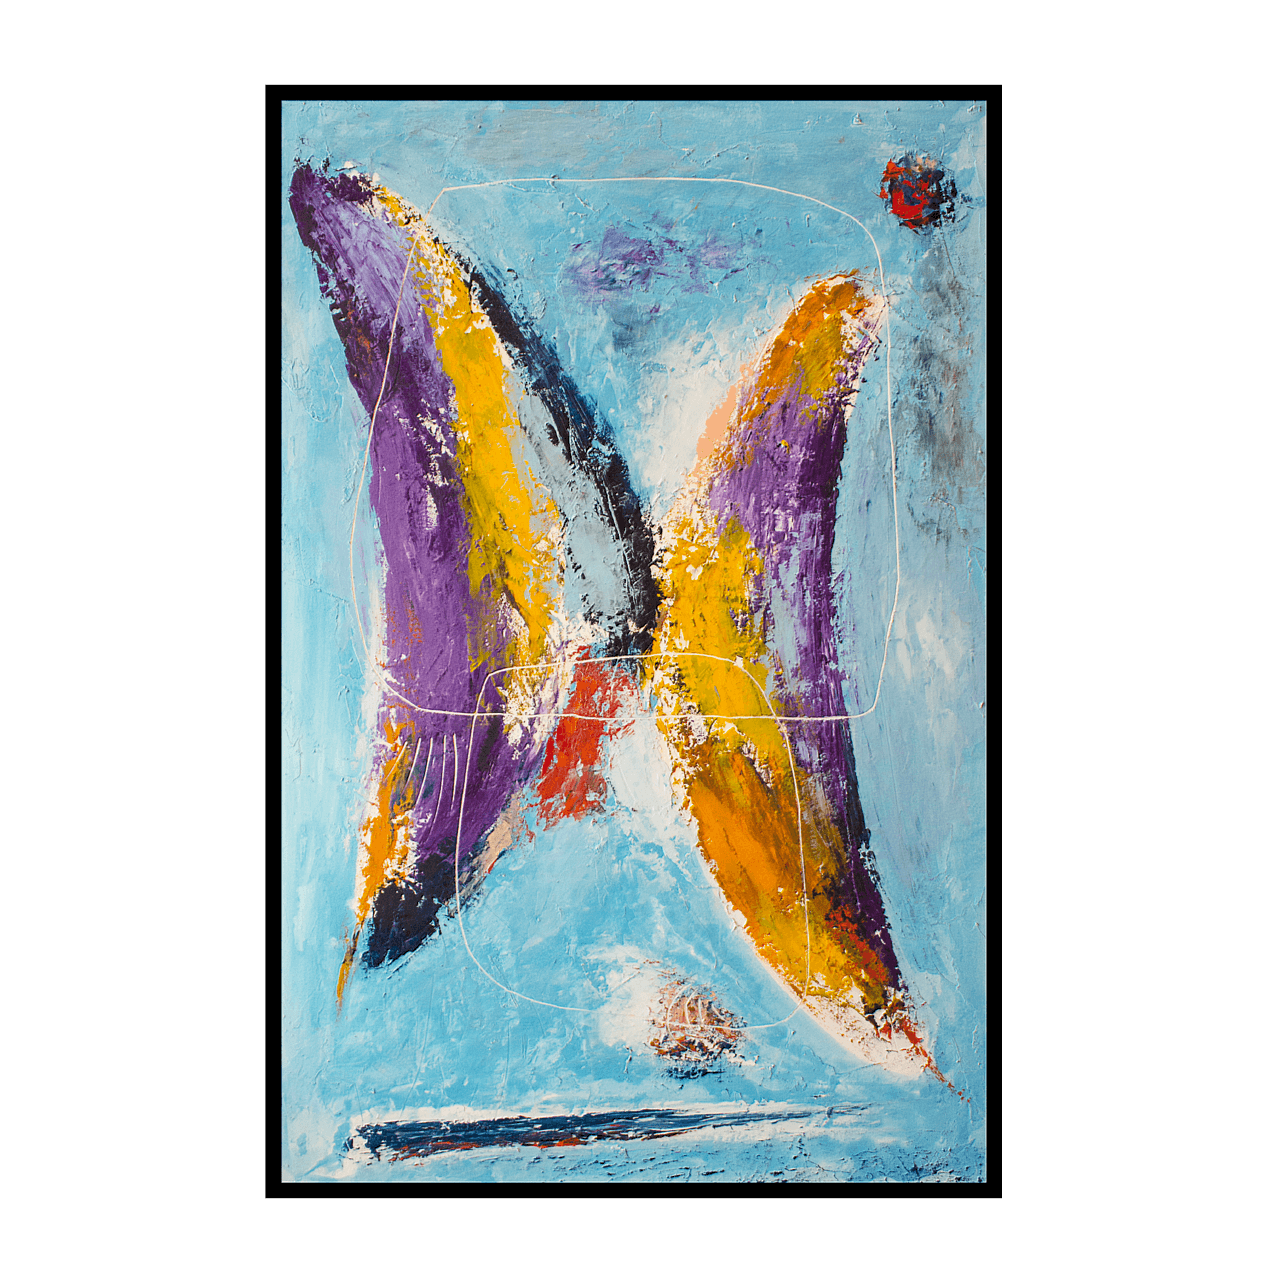 mario pavesi italian sculptur painter common places butterfly